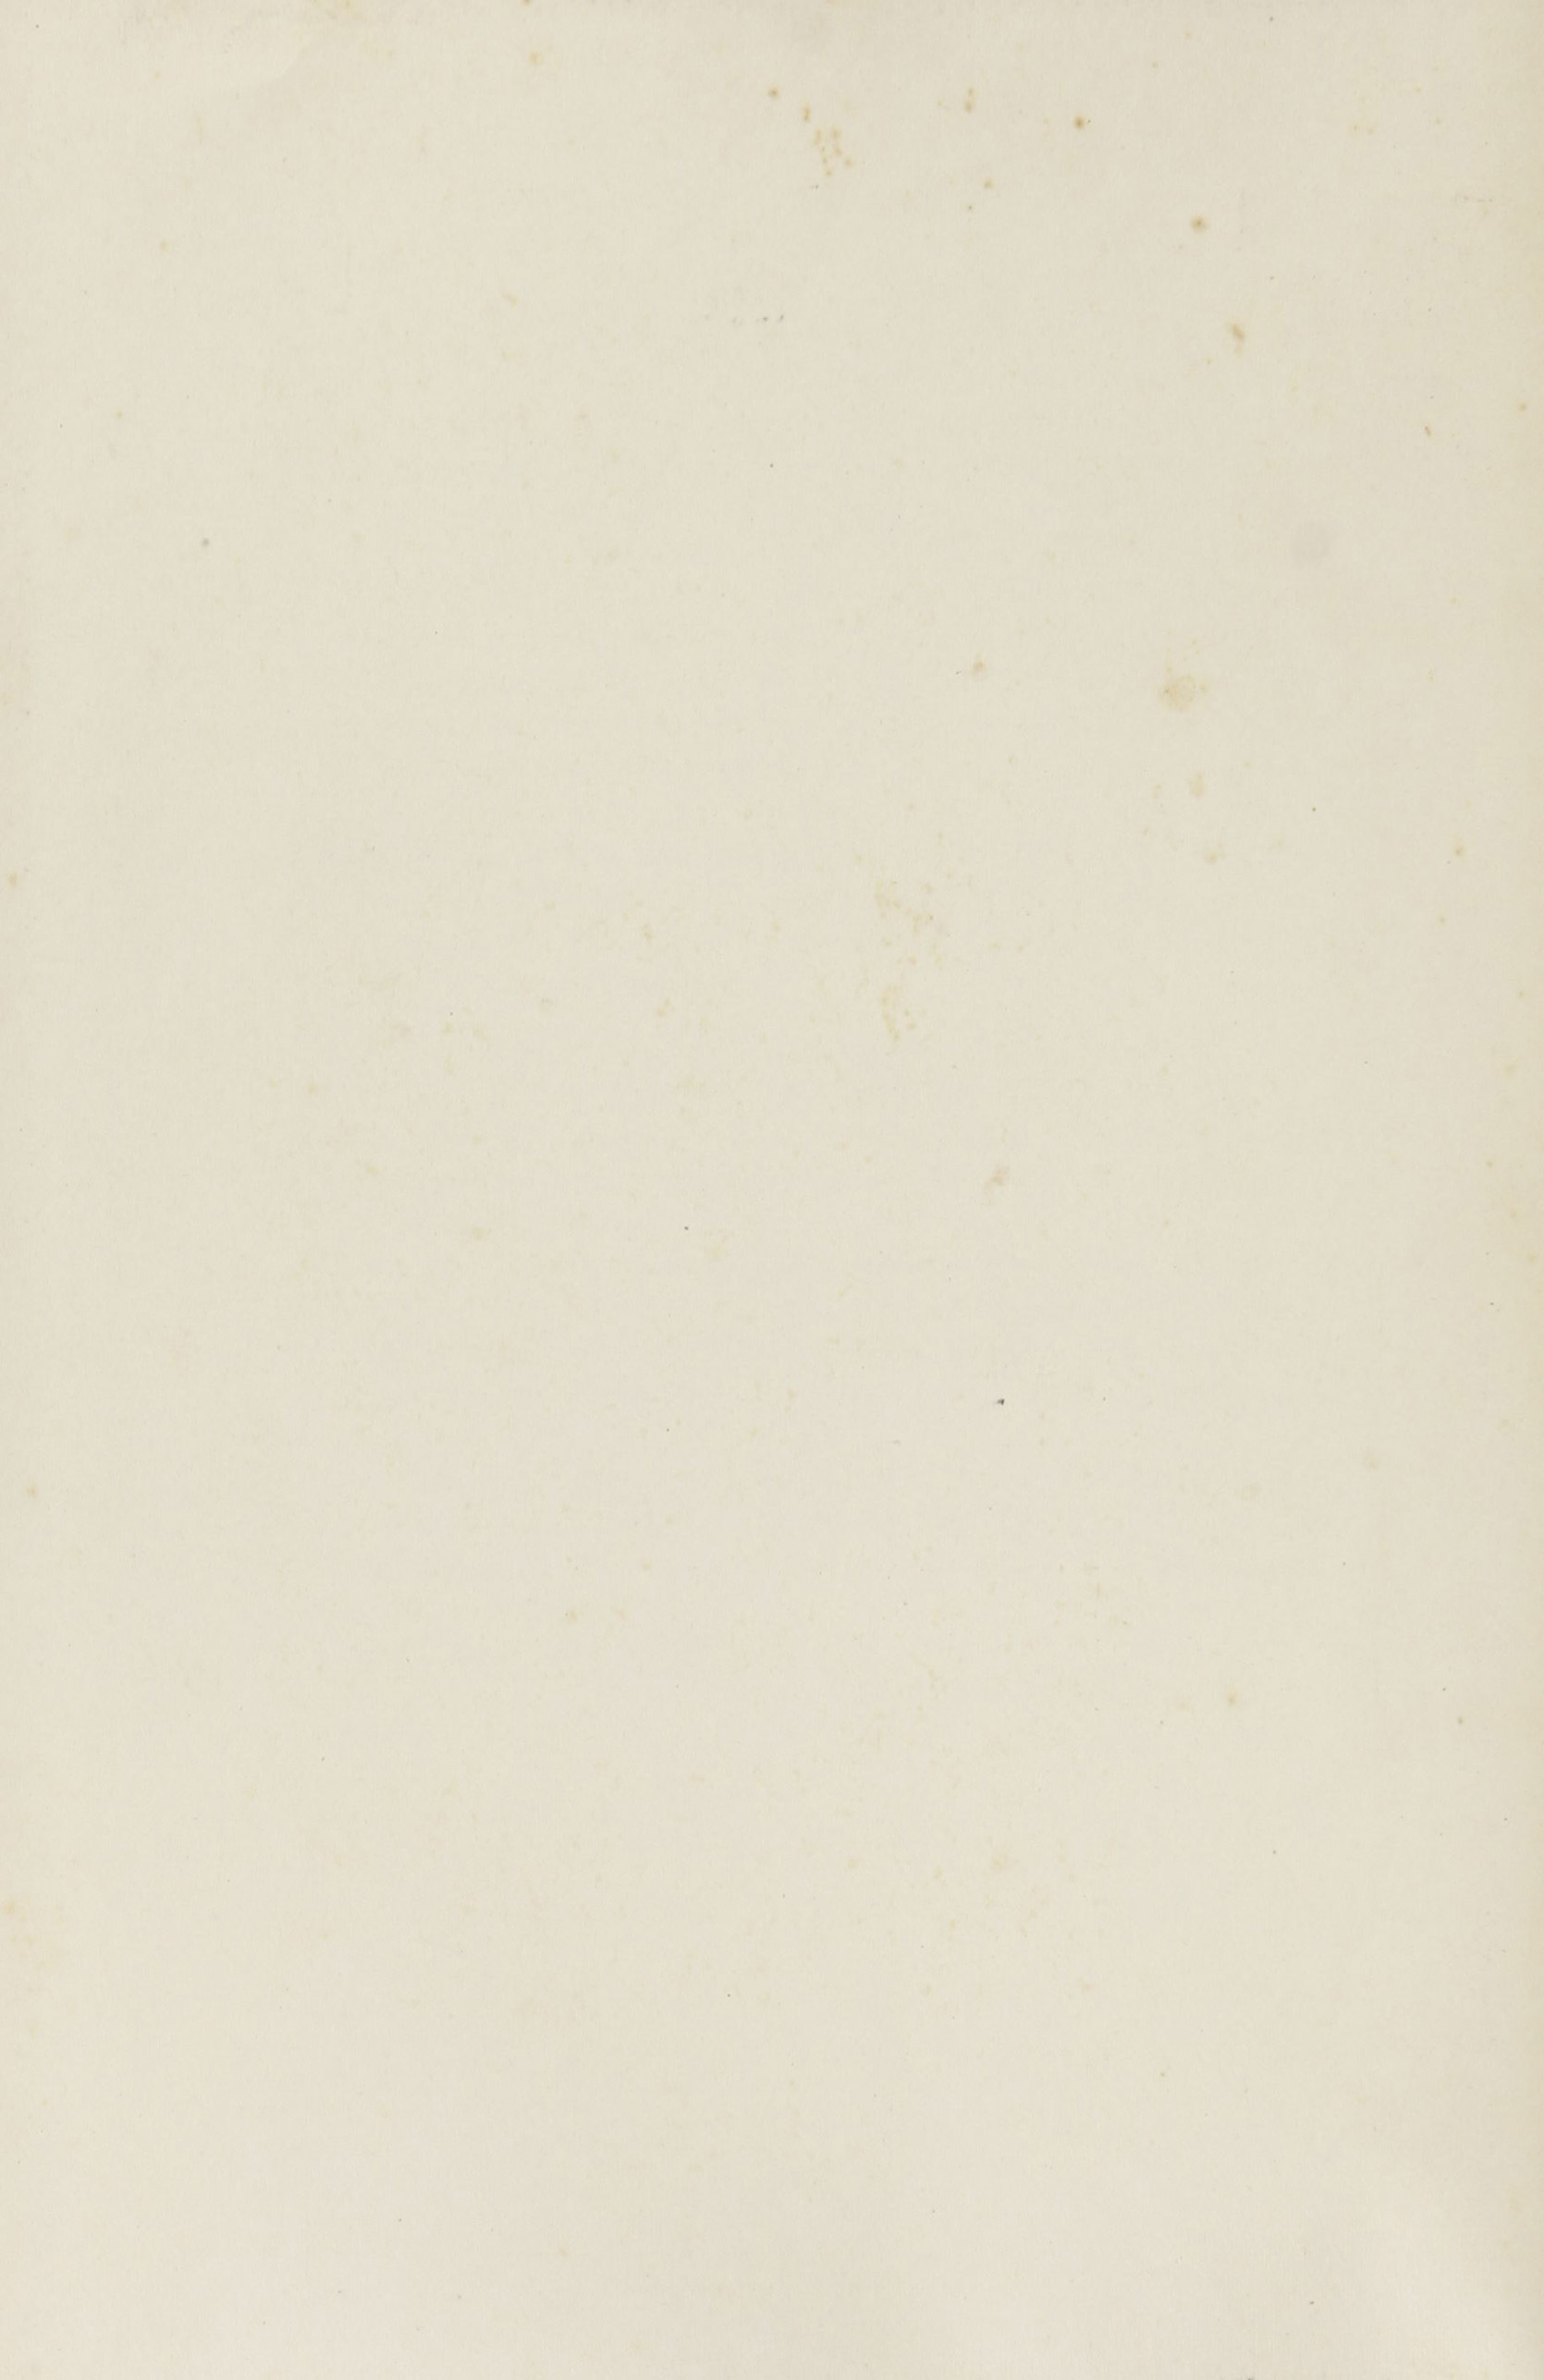 Charleston Yearbook, 1920, blank page